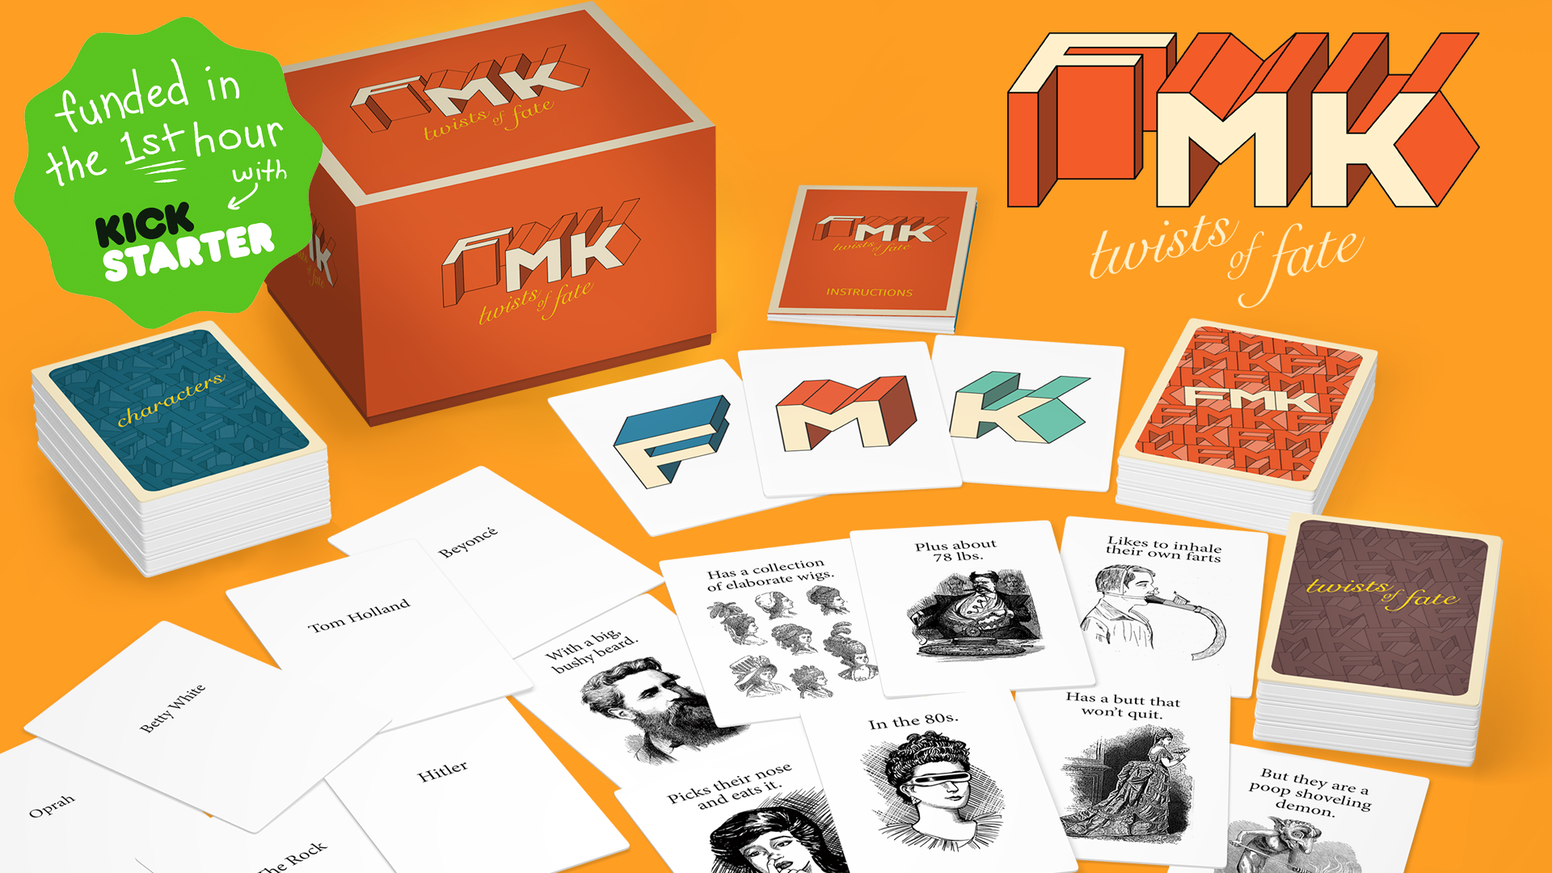 F Thor? Marry Gandhi? Kill Hitler? What if he can grant magic wishes? The choices are tough but silly in this hilarious card game.